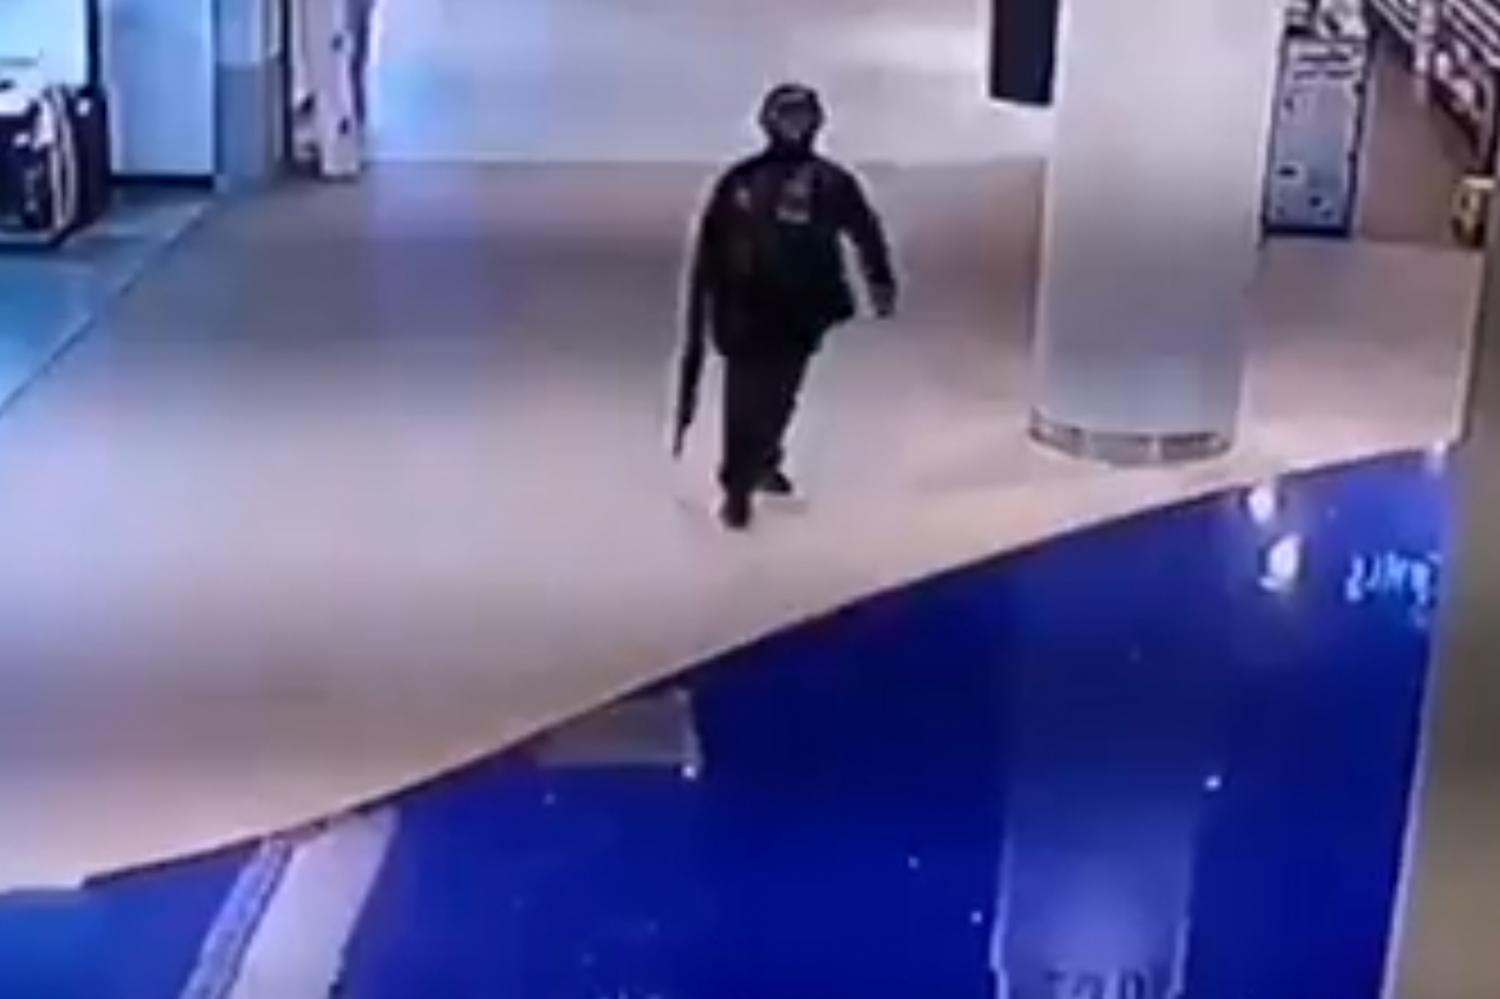 CAUGHT ON FILM: The suspected shooter in a CCTV grab at Terminal 21 shopping mall.